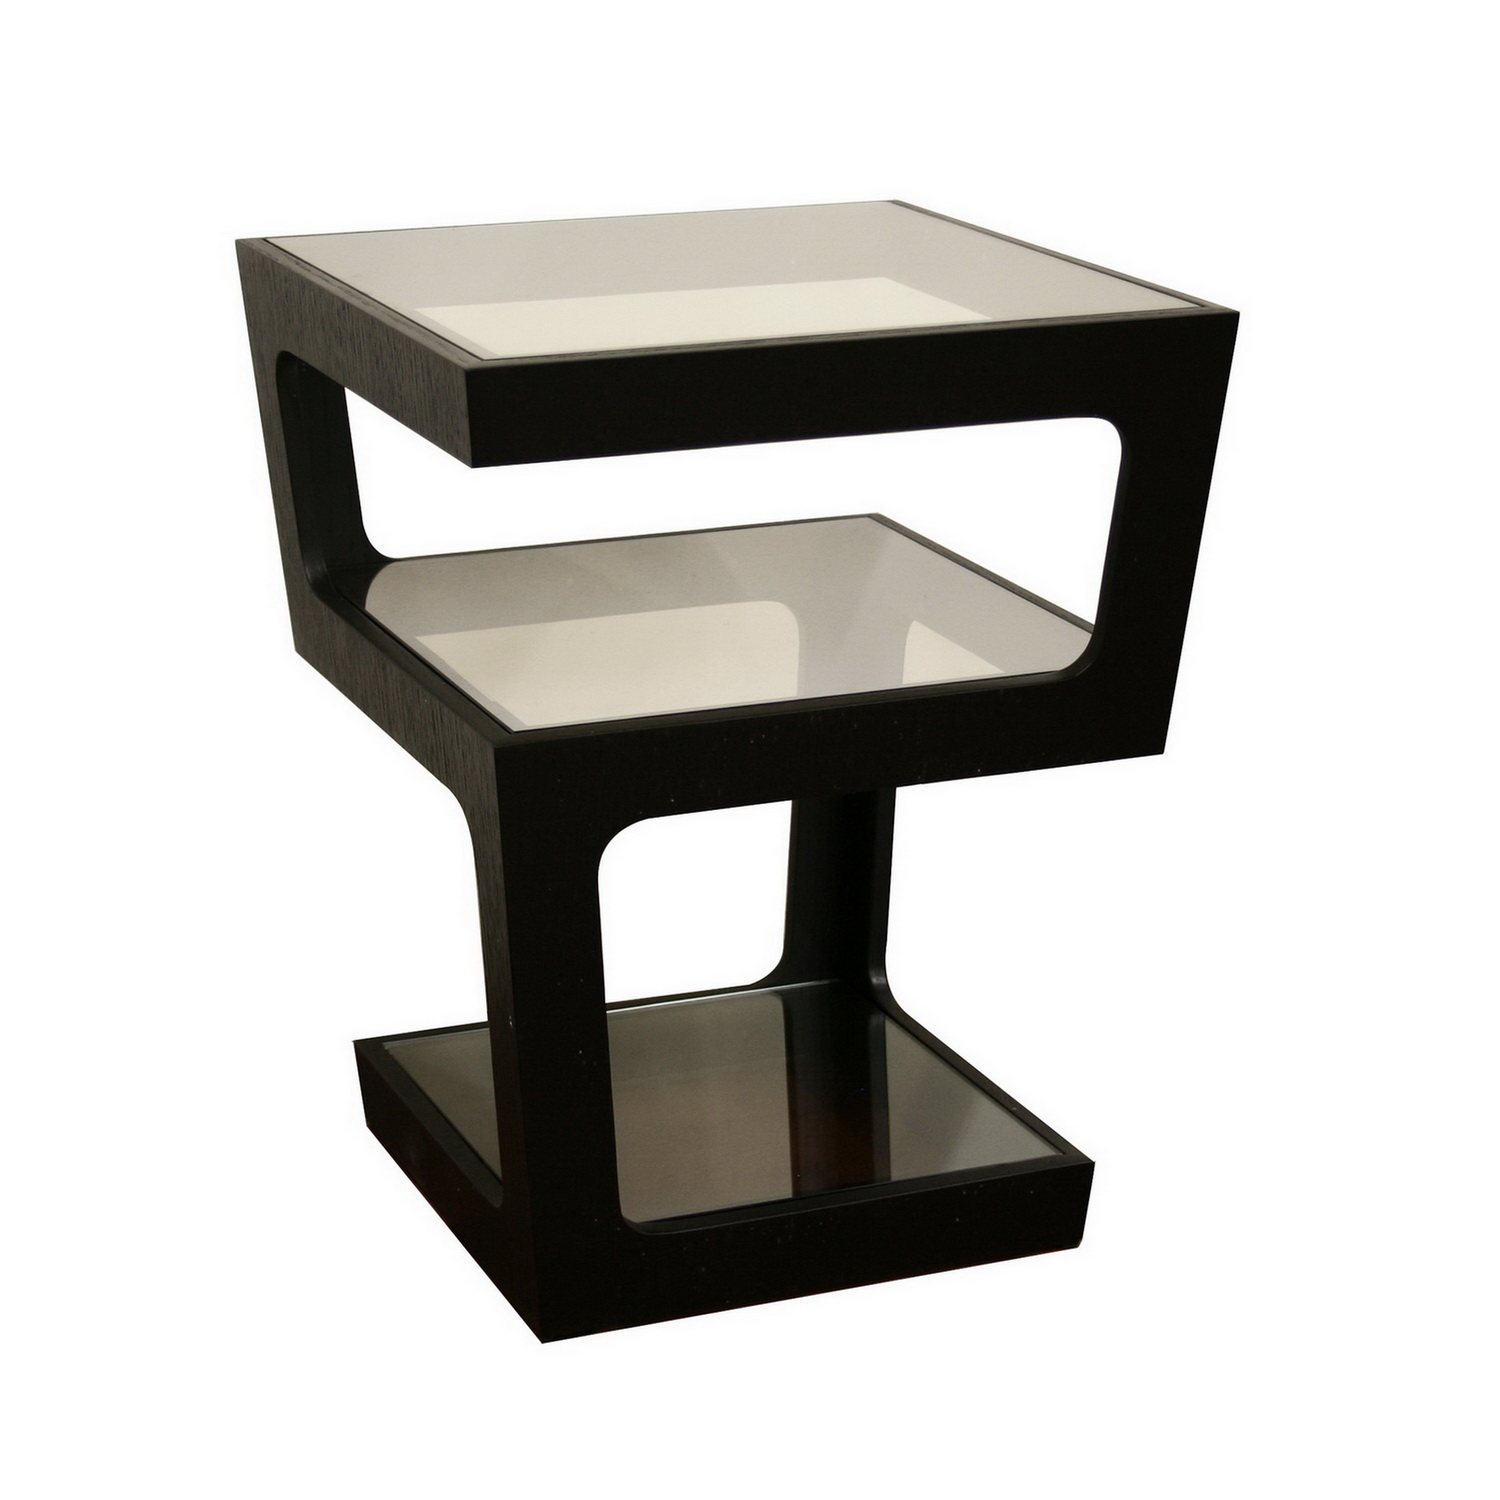 Table modern small side tables Modern side table